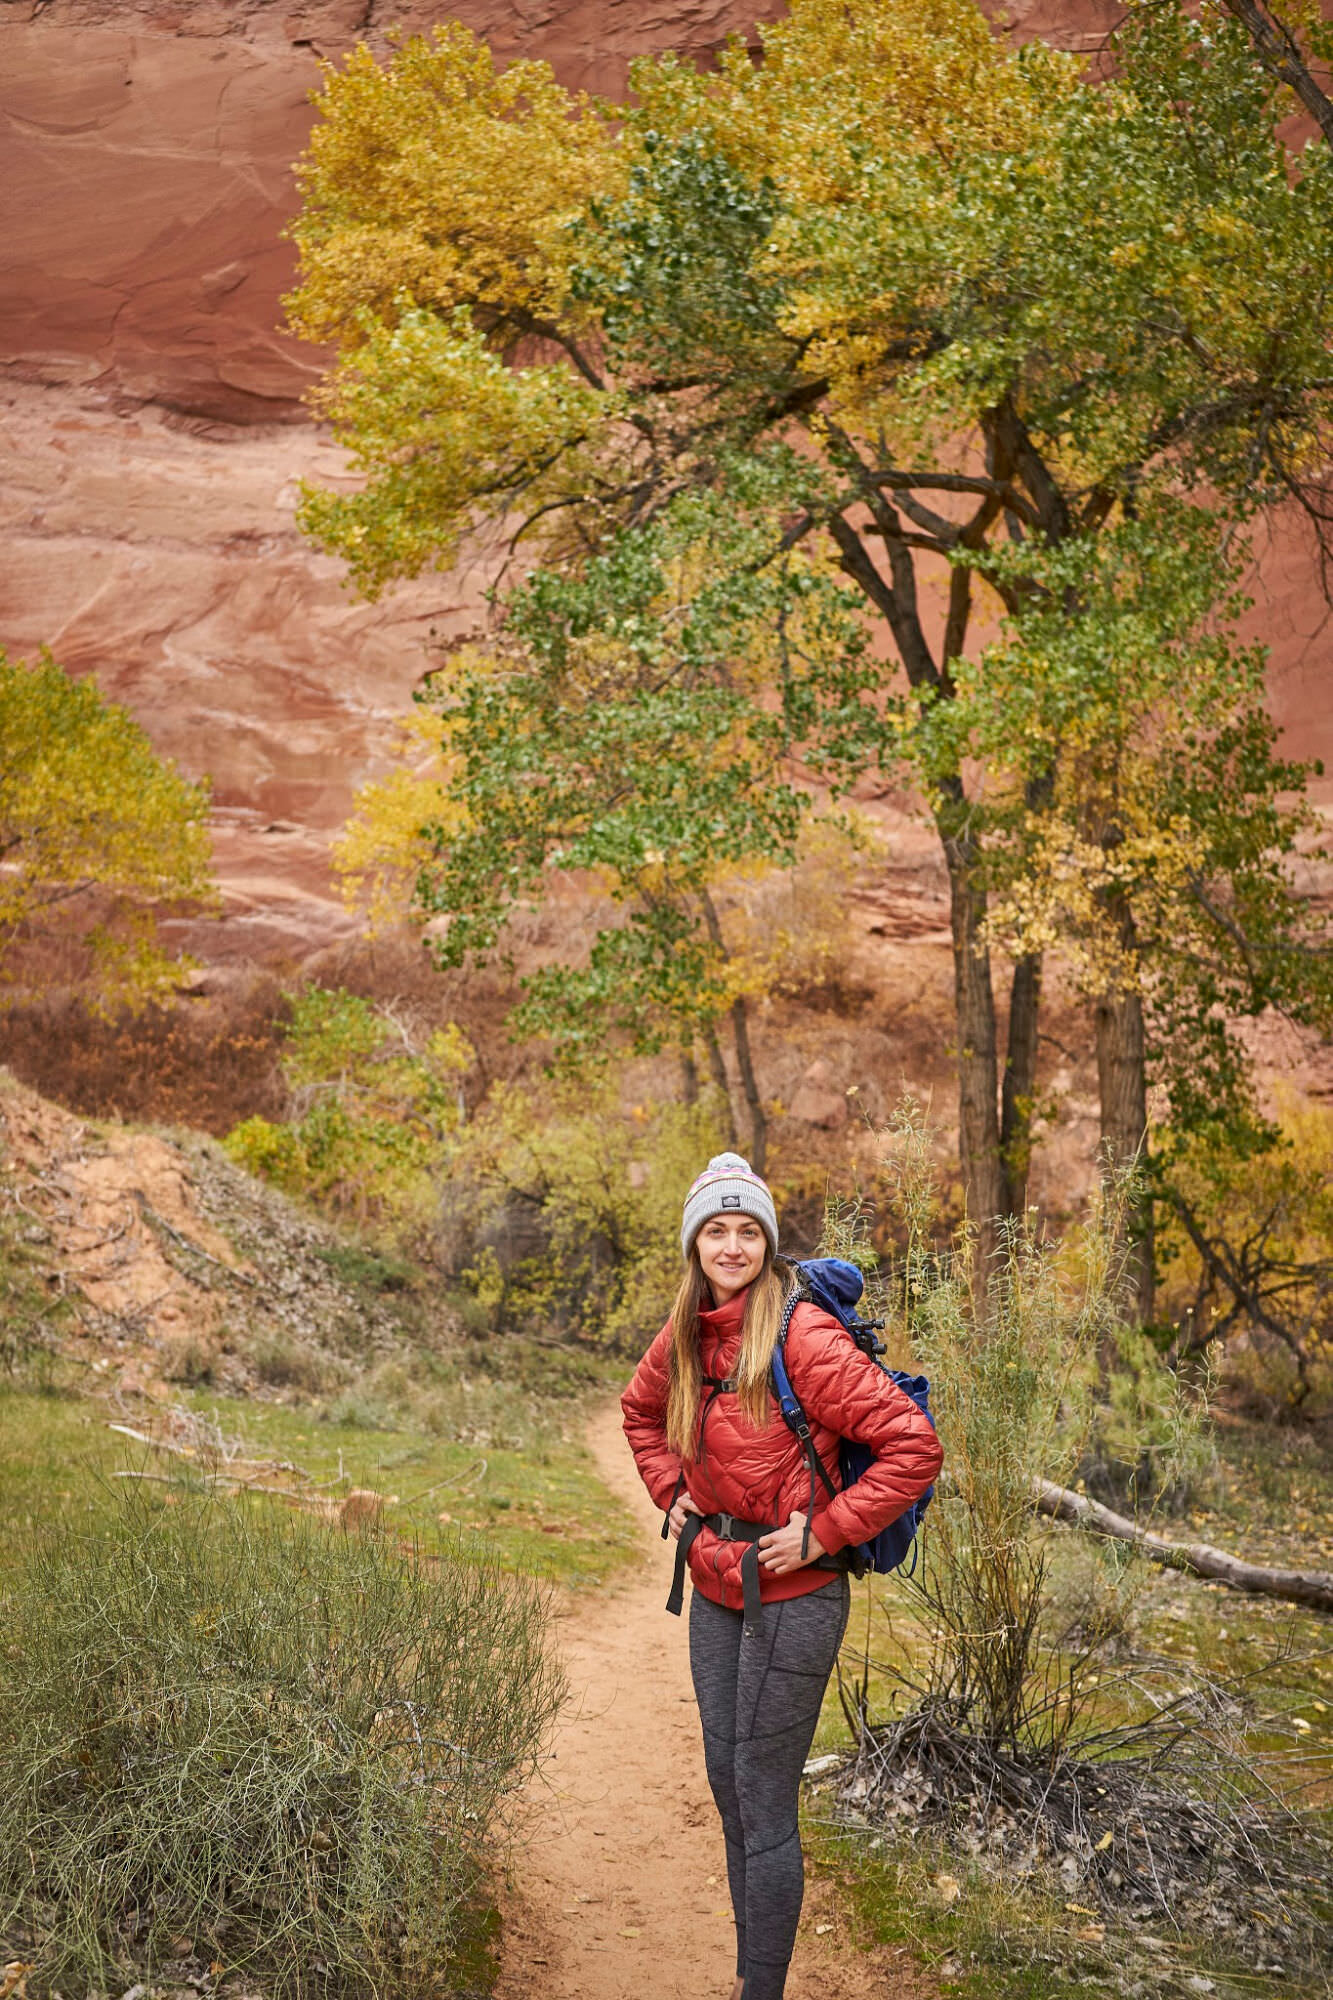 Amanda Outside backpacking in Coyote Gulch Utah. Plan your trip with this guide. www.amandaoutside.com